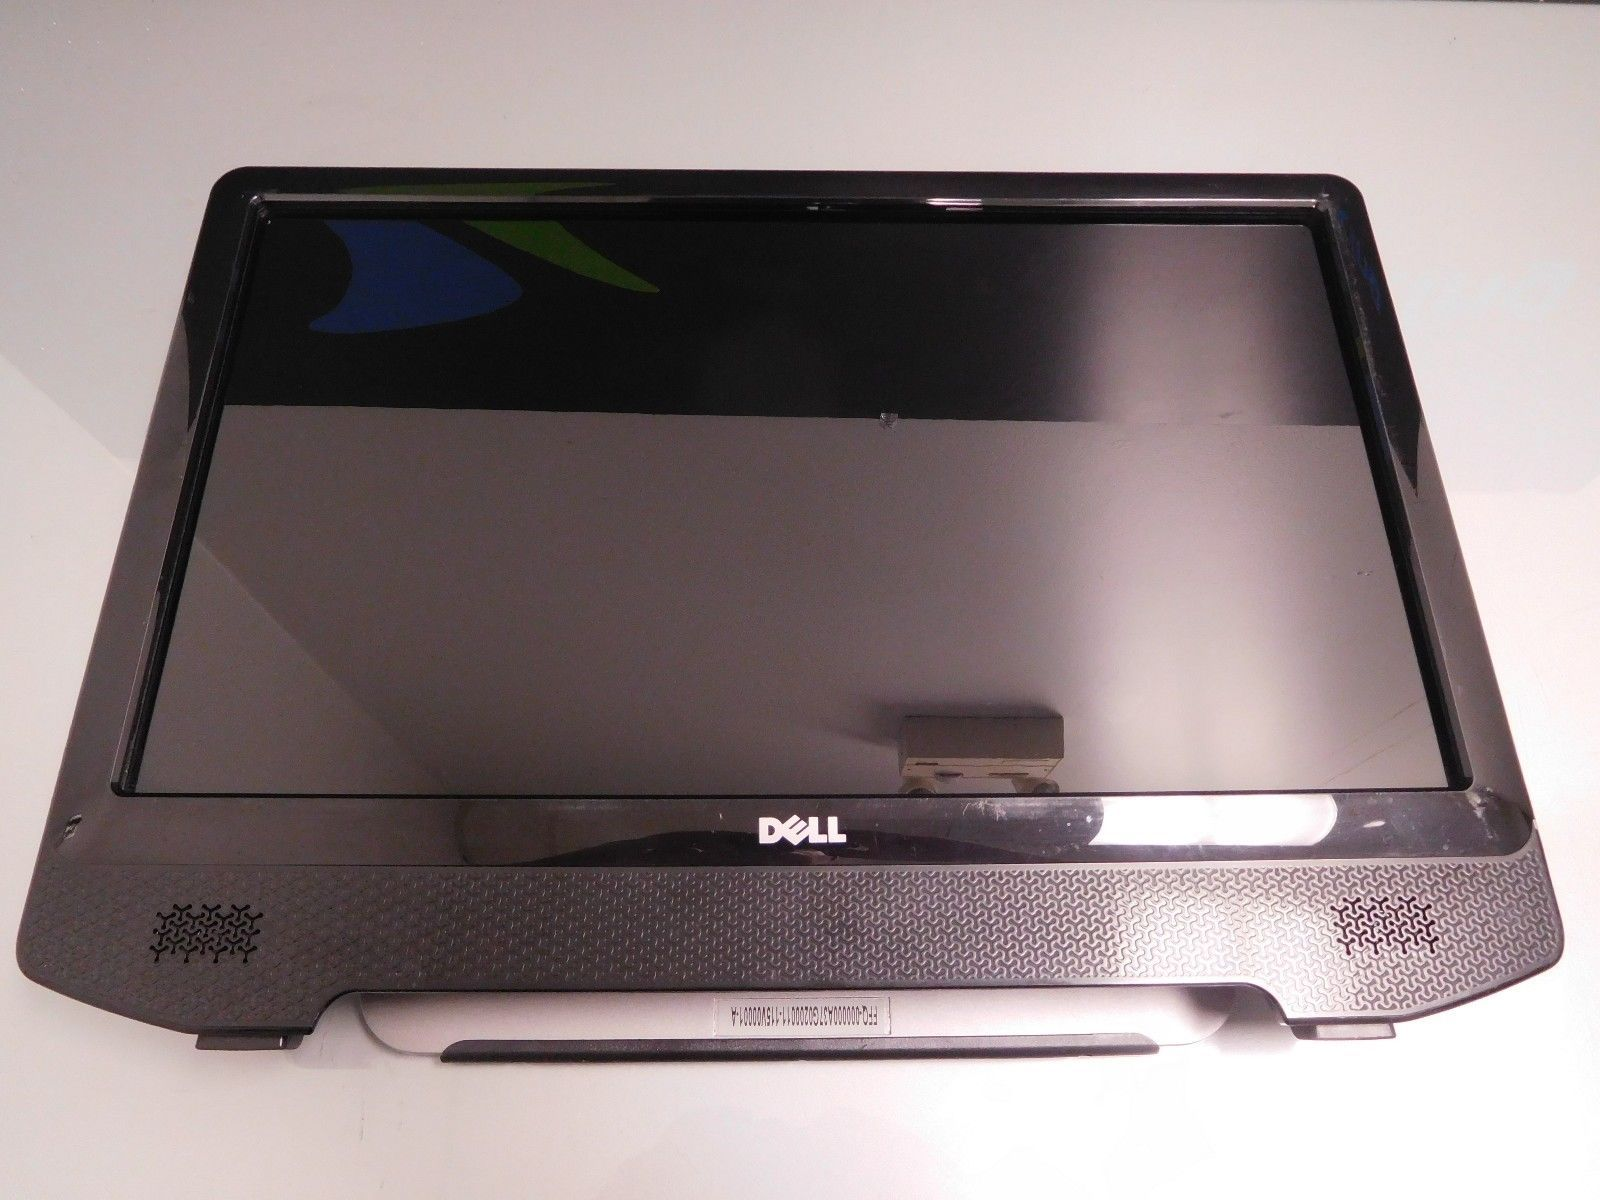 Dell ST2220T HYWJP 22-Inch LCD 1080P Screen and 50 similar items